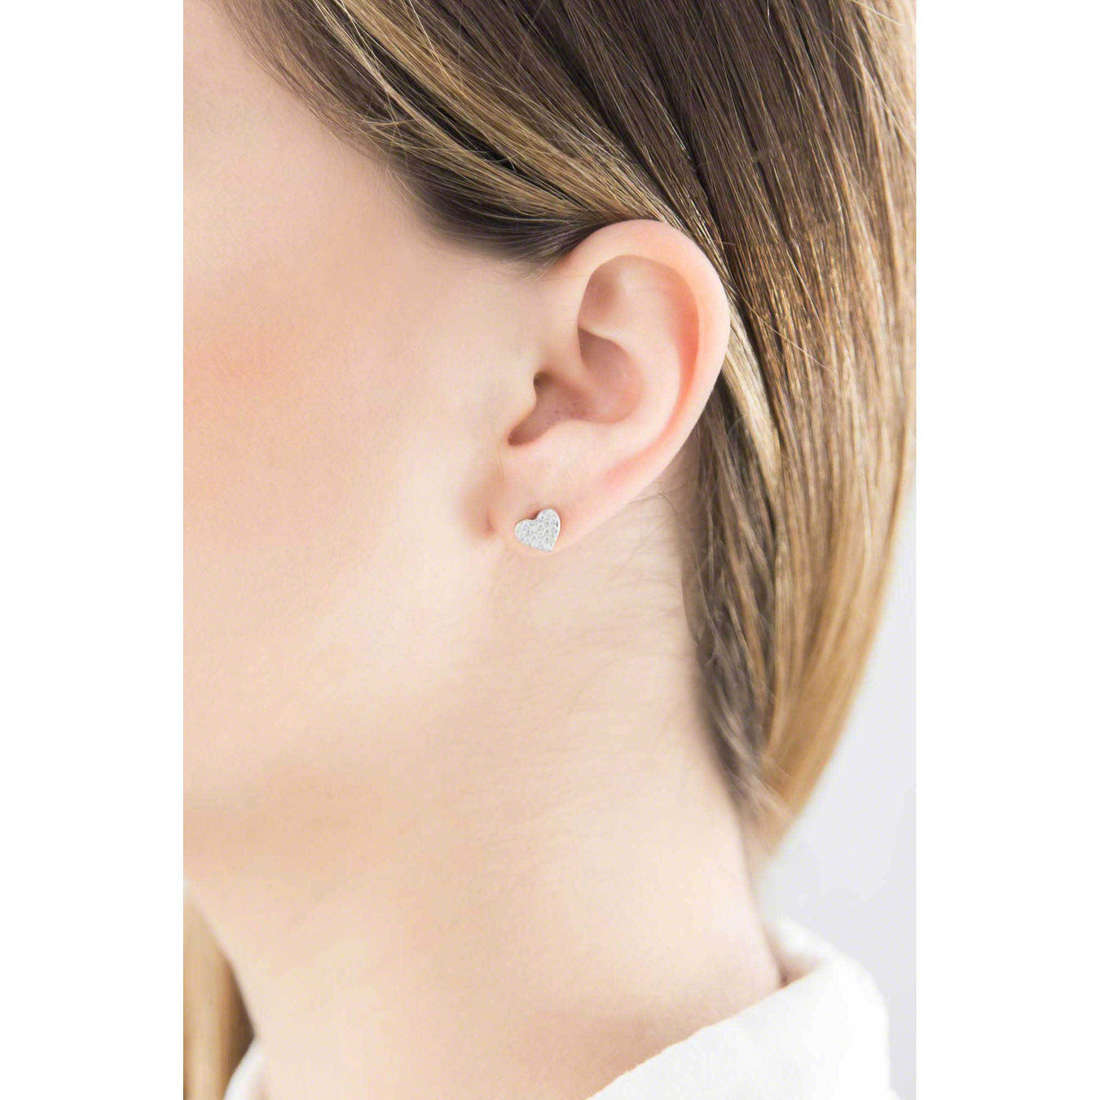 Brosway boucles d'oreille Icons femme G9IS23 indosso